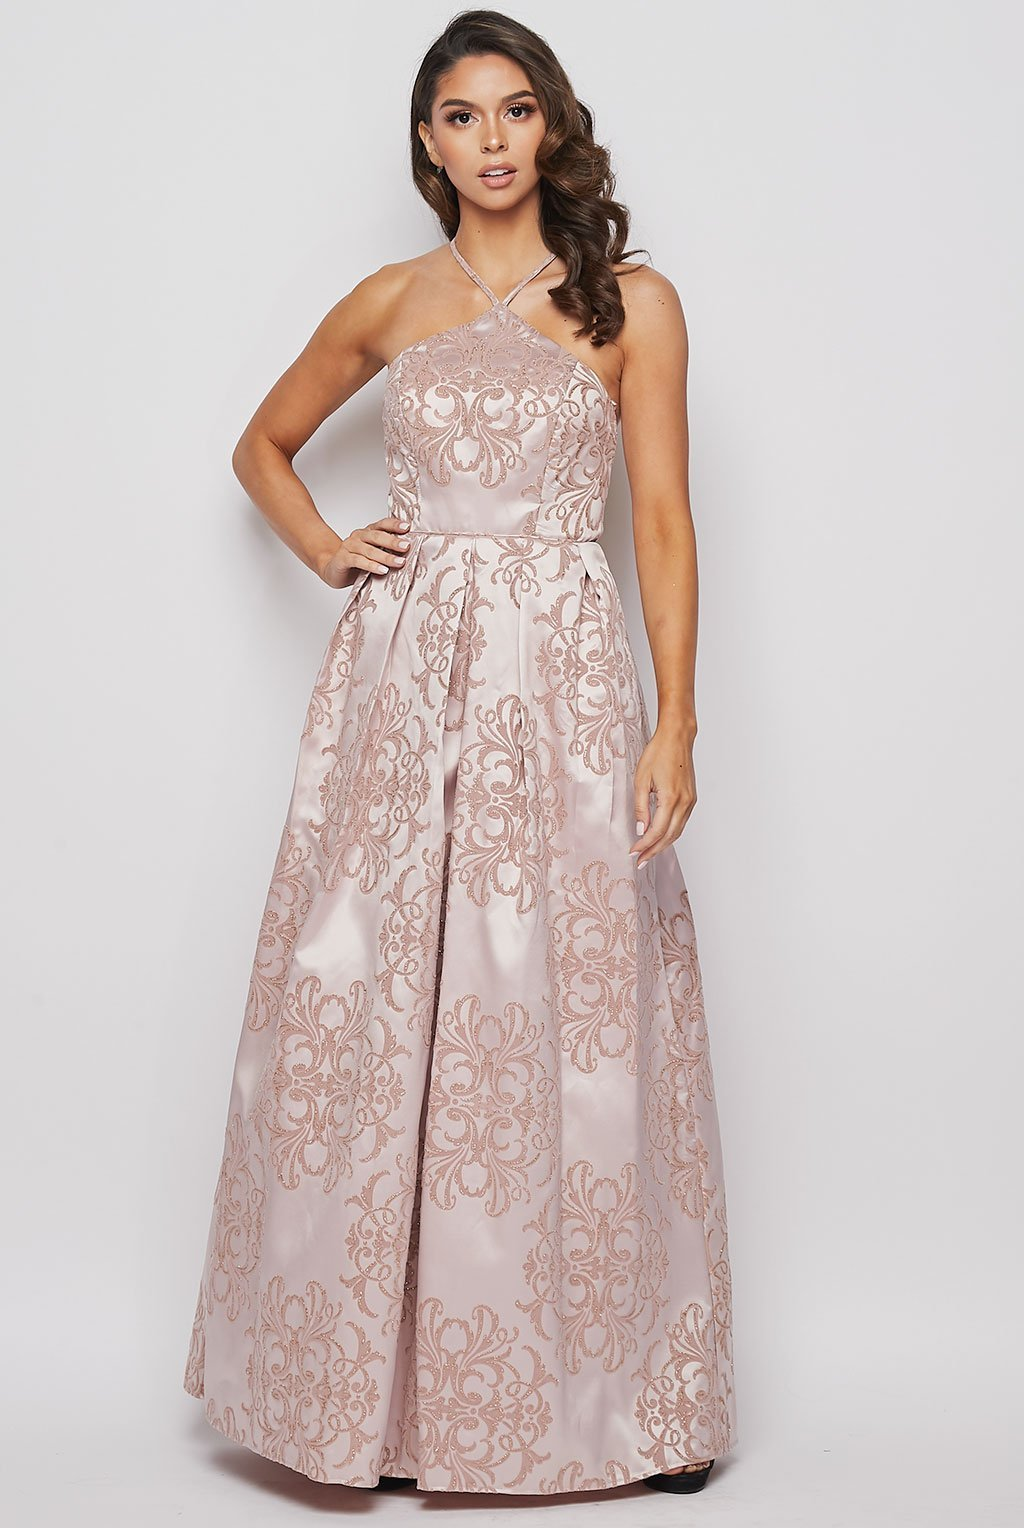 Teeze Me | Glitter-Velvet Flocked Halter Gown With Pockets | Blush